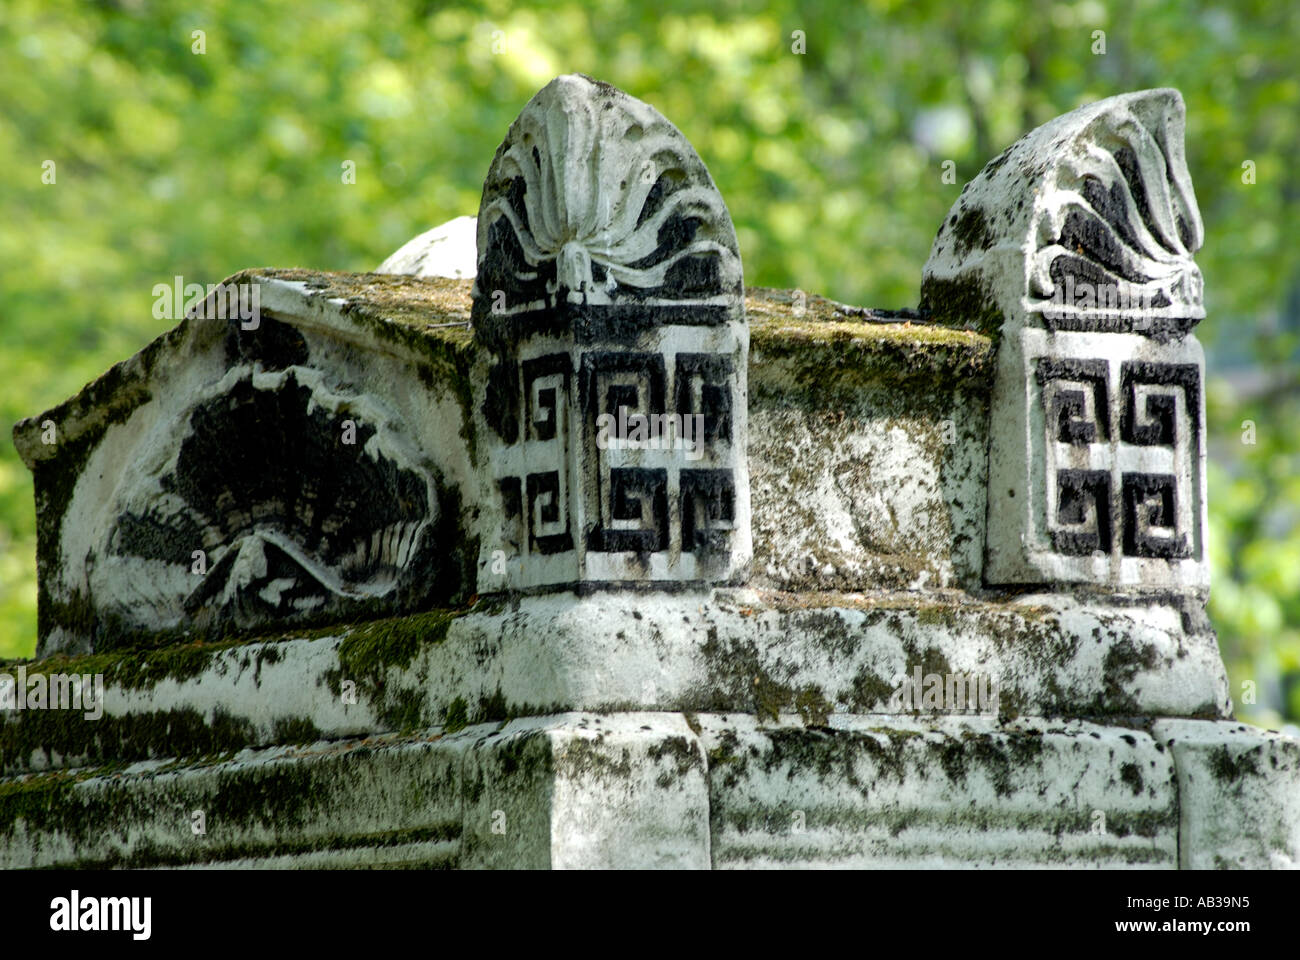 Gravestone detail in Bunhill Fields Cemetery London Borough of Islington - Stock Image